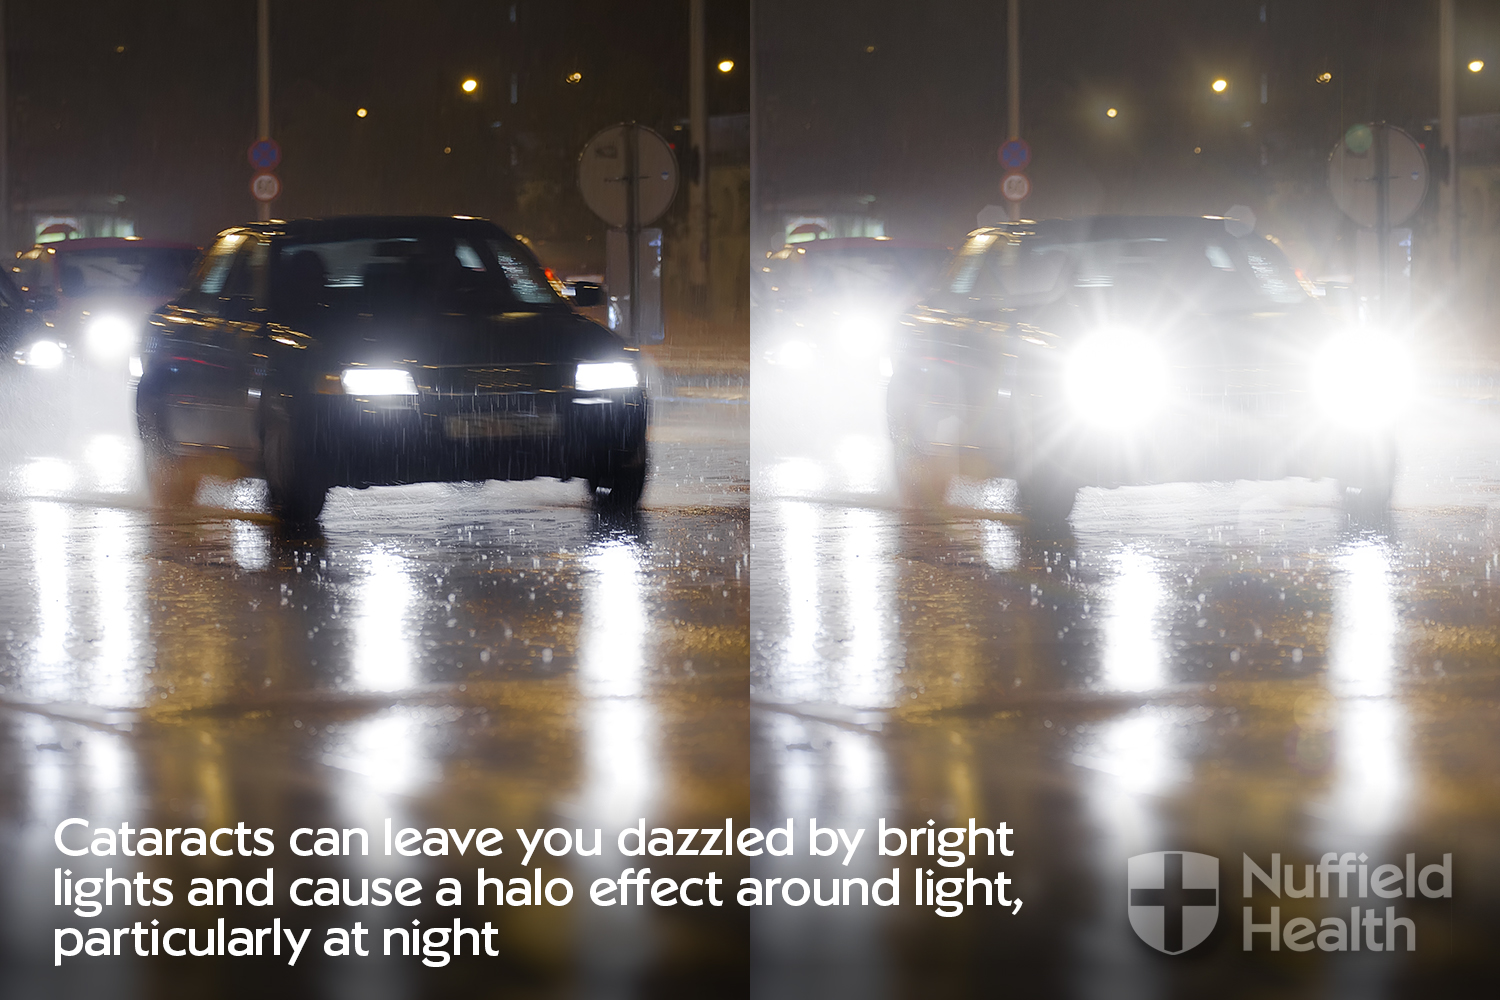 Cataract symptom of dazzled eye sight from car lights